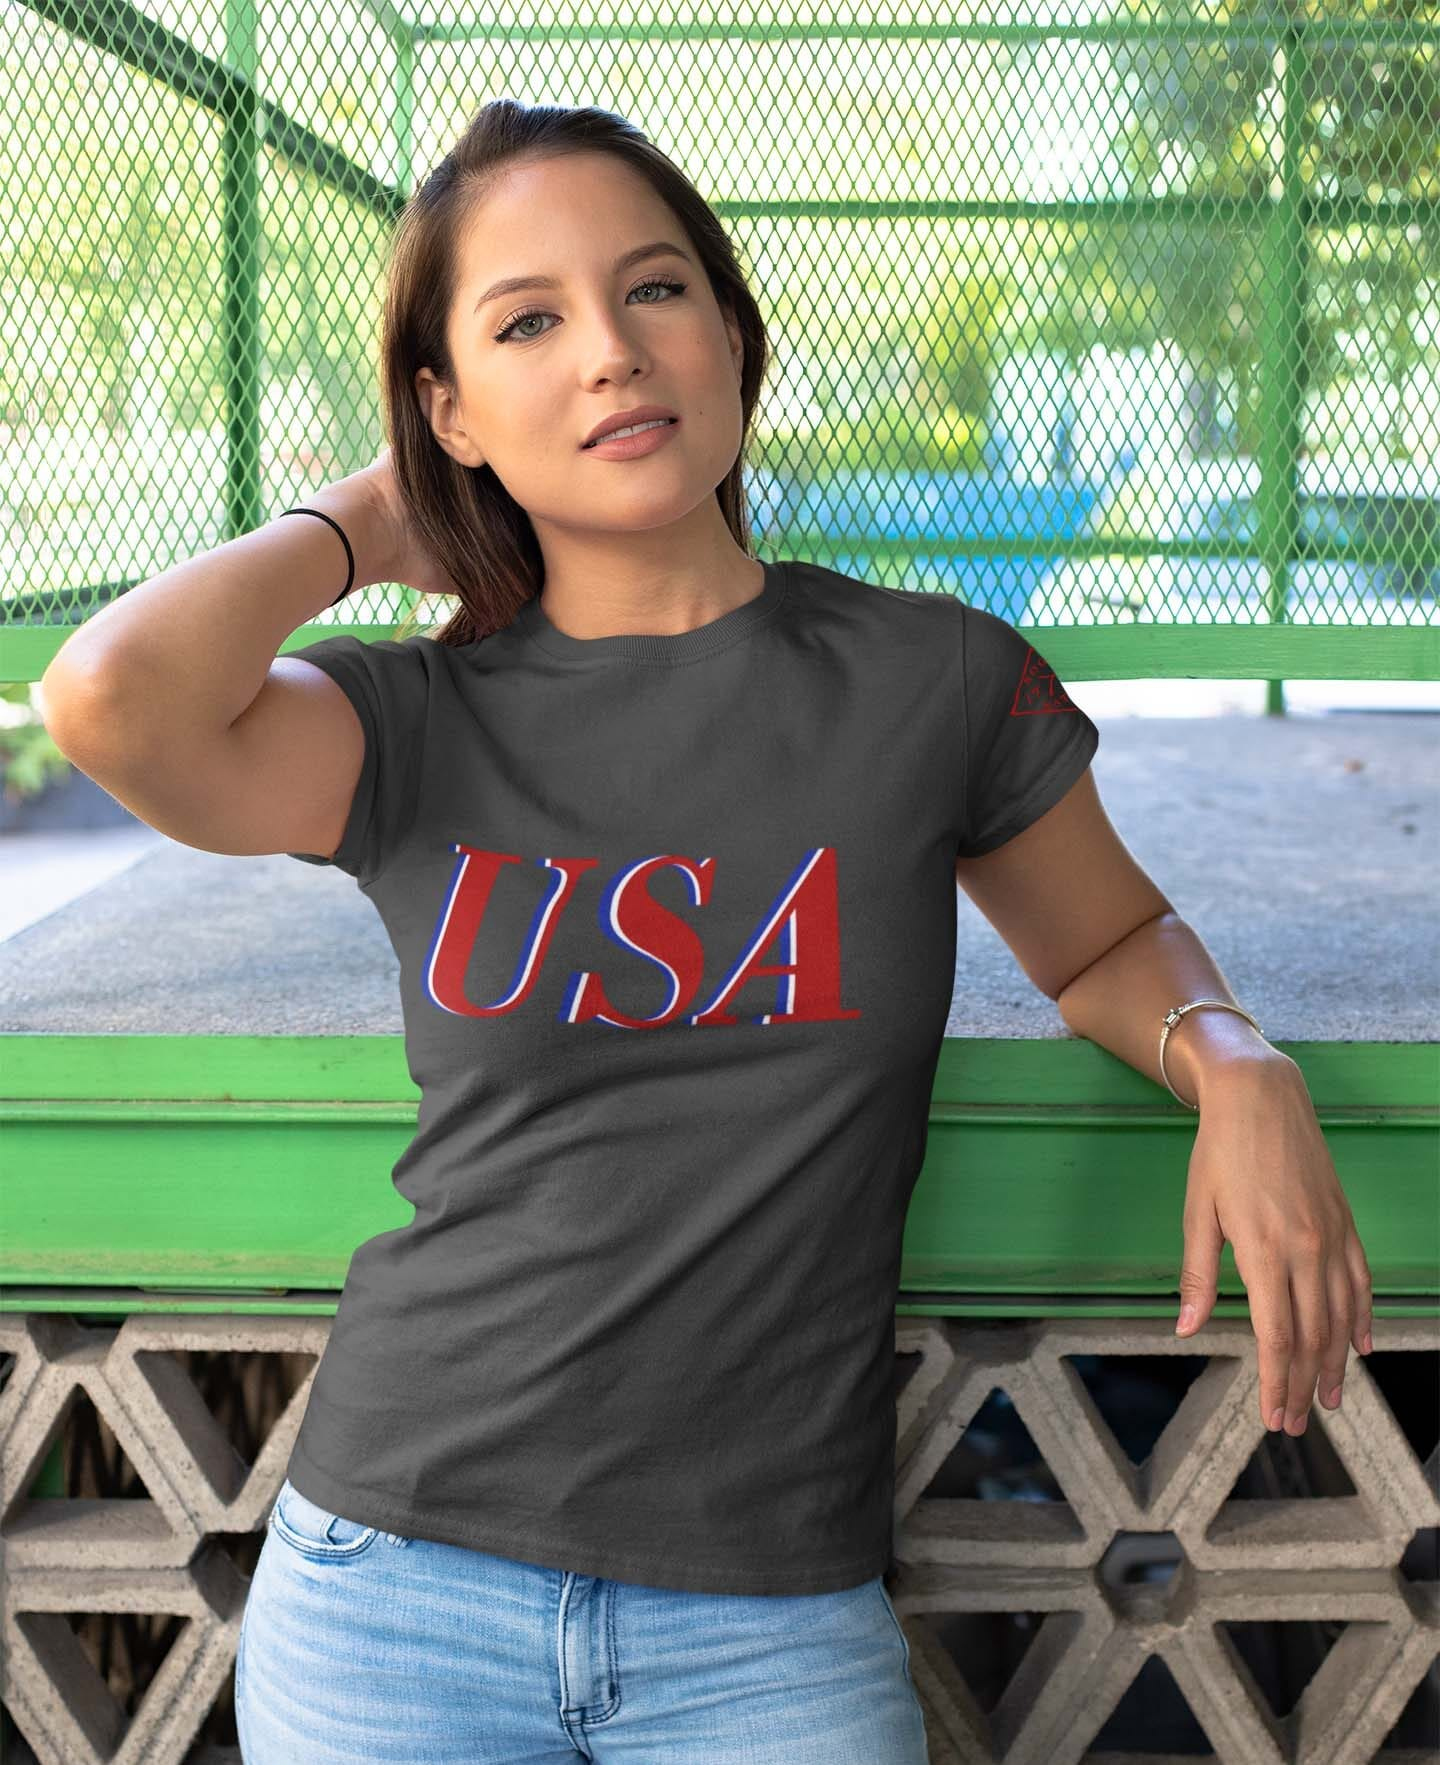 USA Red White & Blue on Women's Charcoal T-Shirt